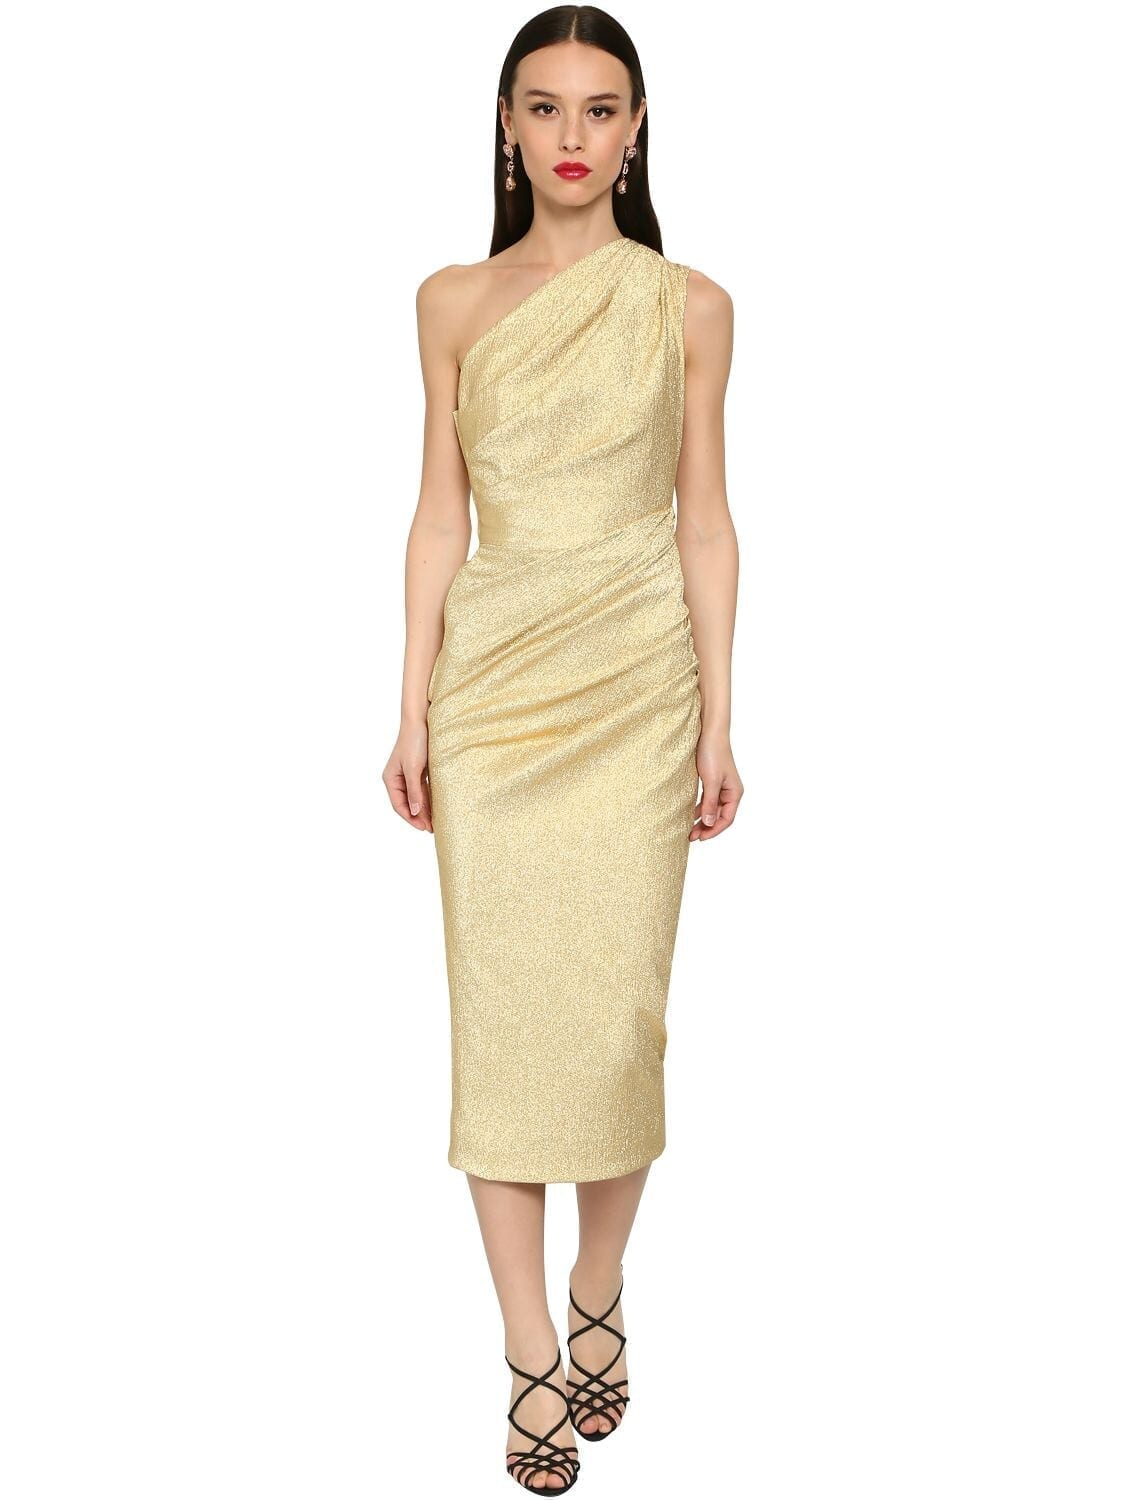 DOLCE & GABBANA One Shoulder Stretch Lamé Midi Dress